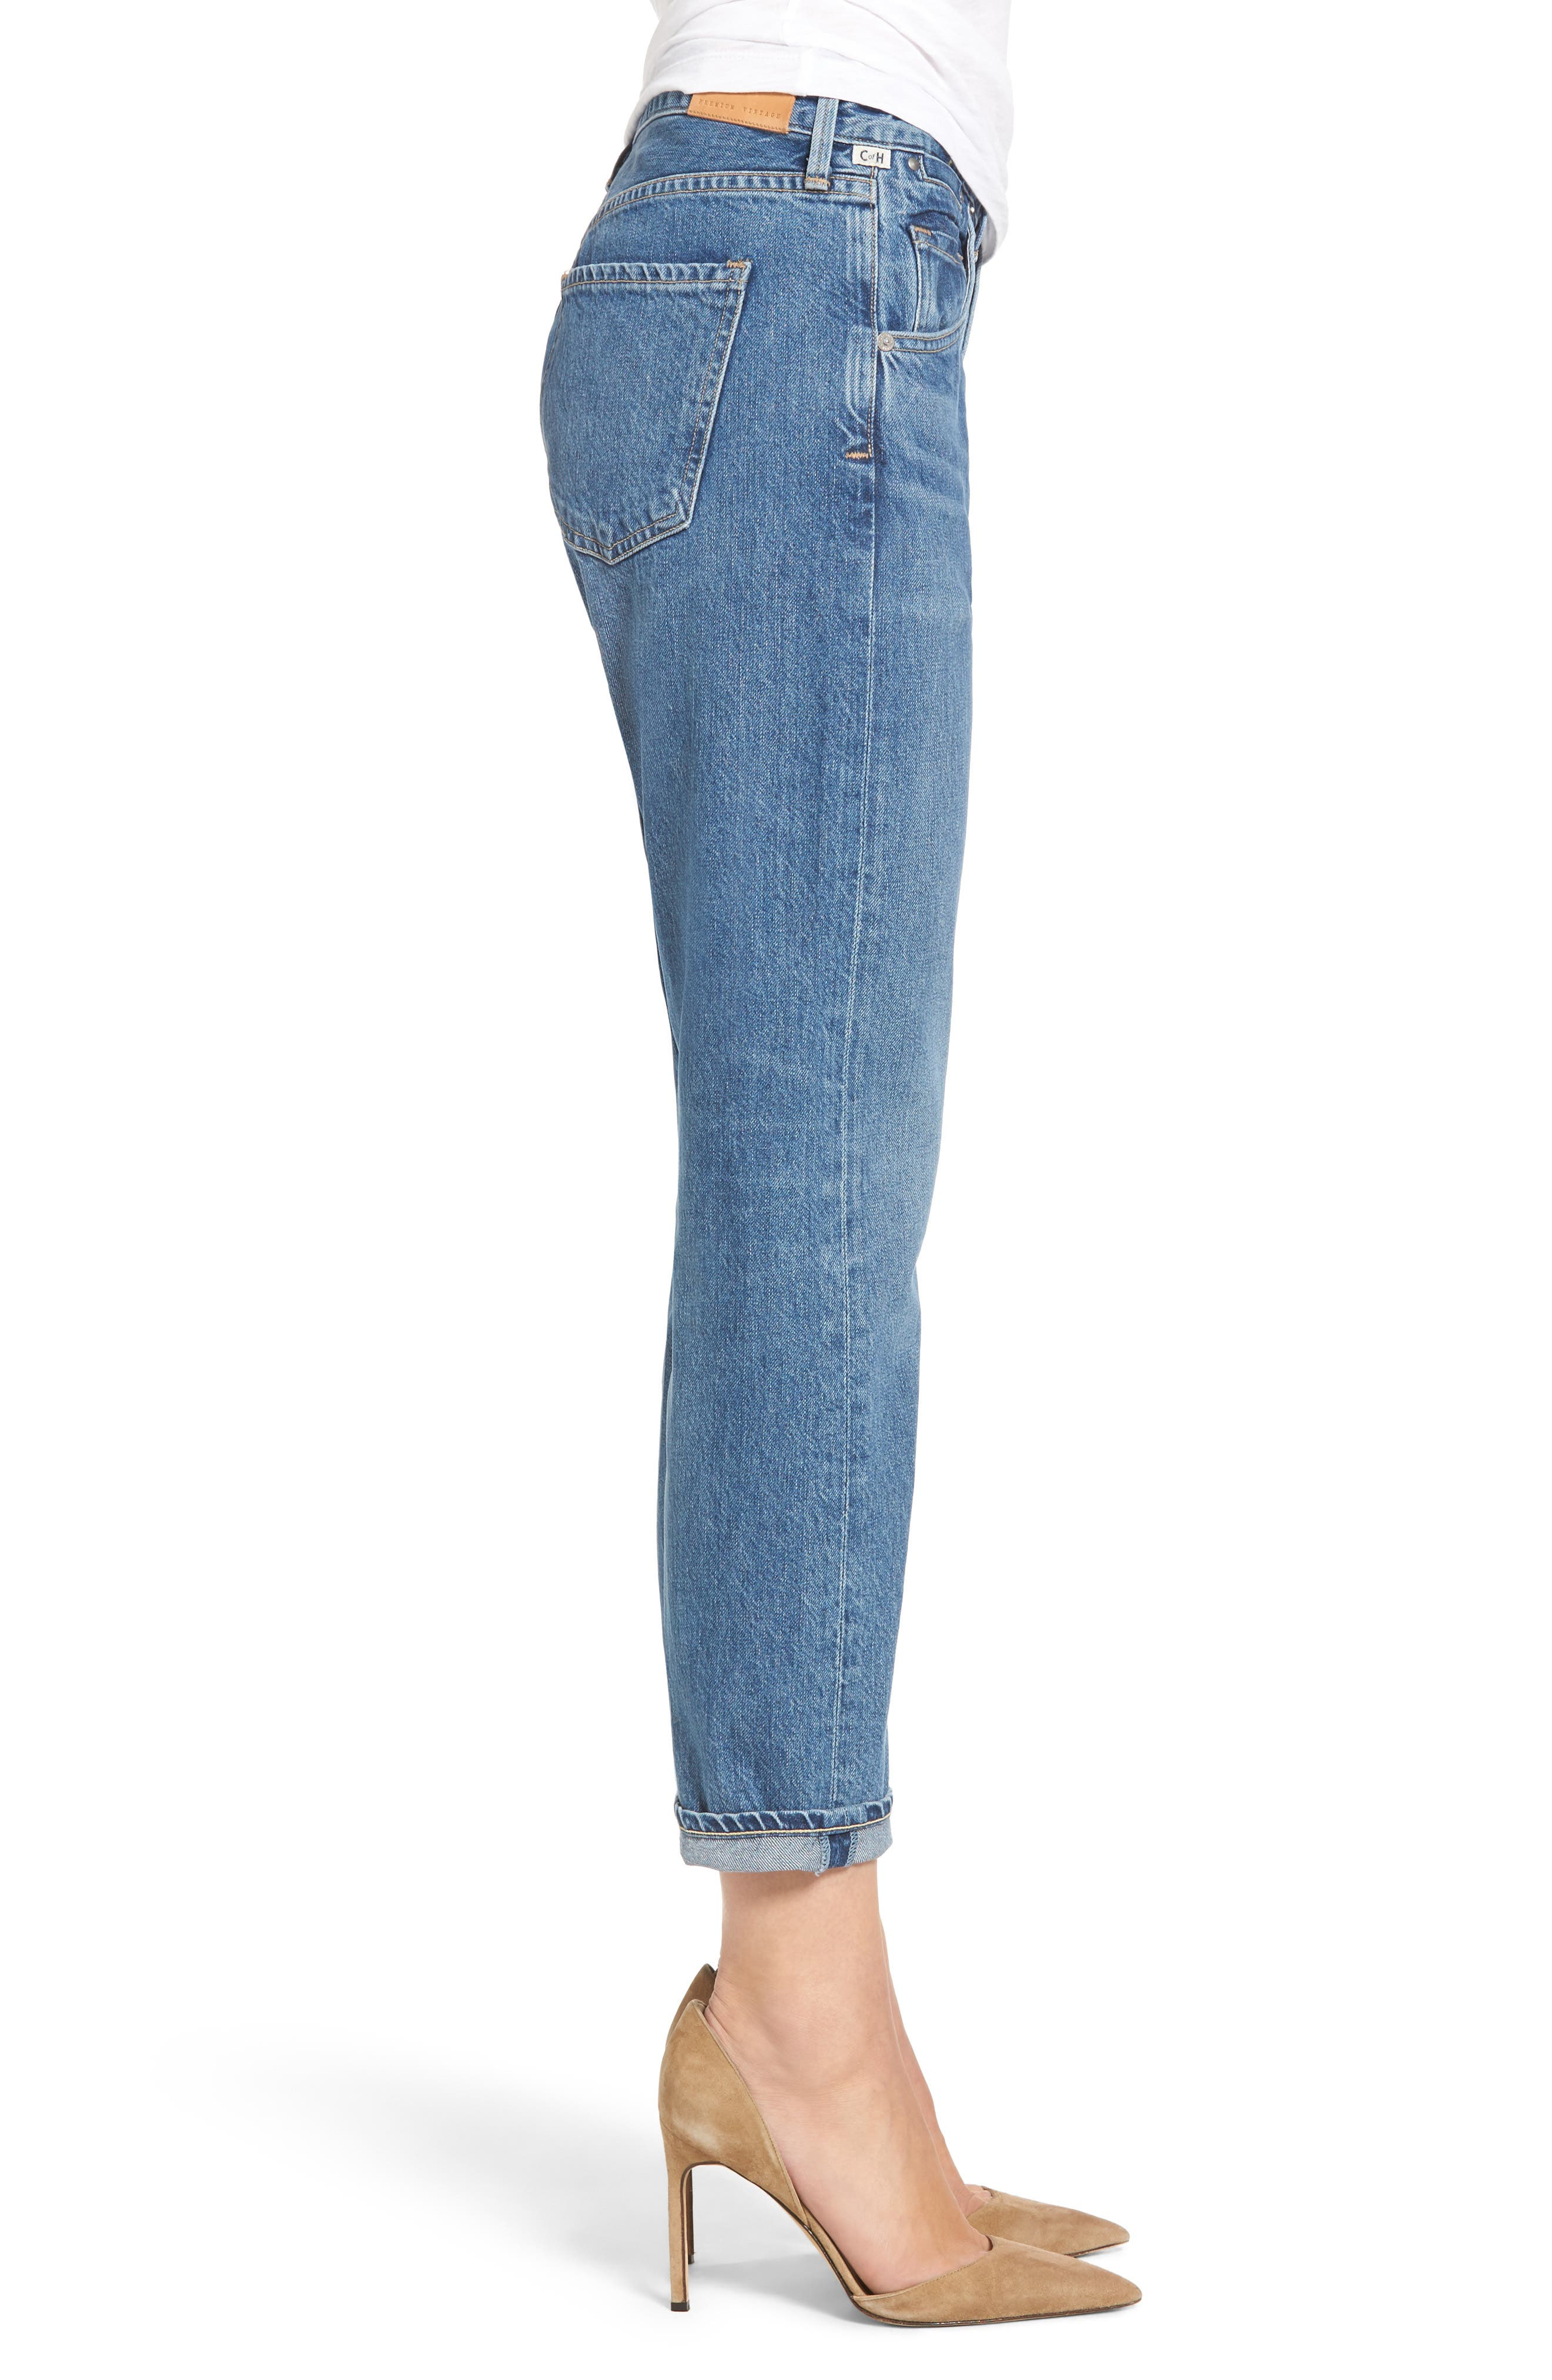 Emerson Slim Boyfriend Jeans,                             Alternate thumbnail 3, color,                             Admire